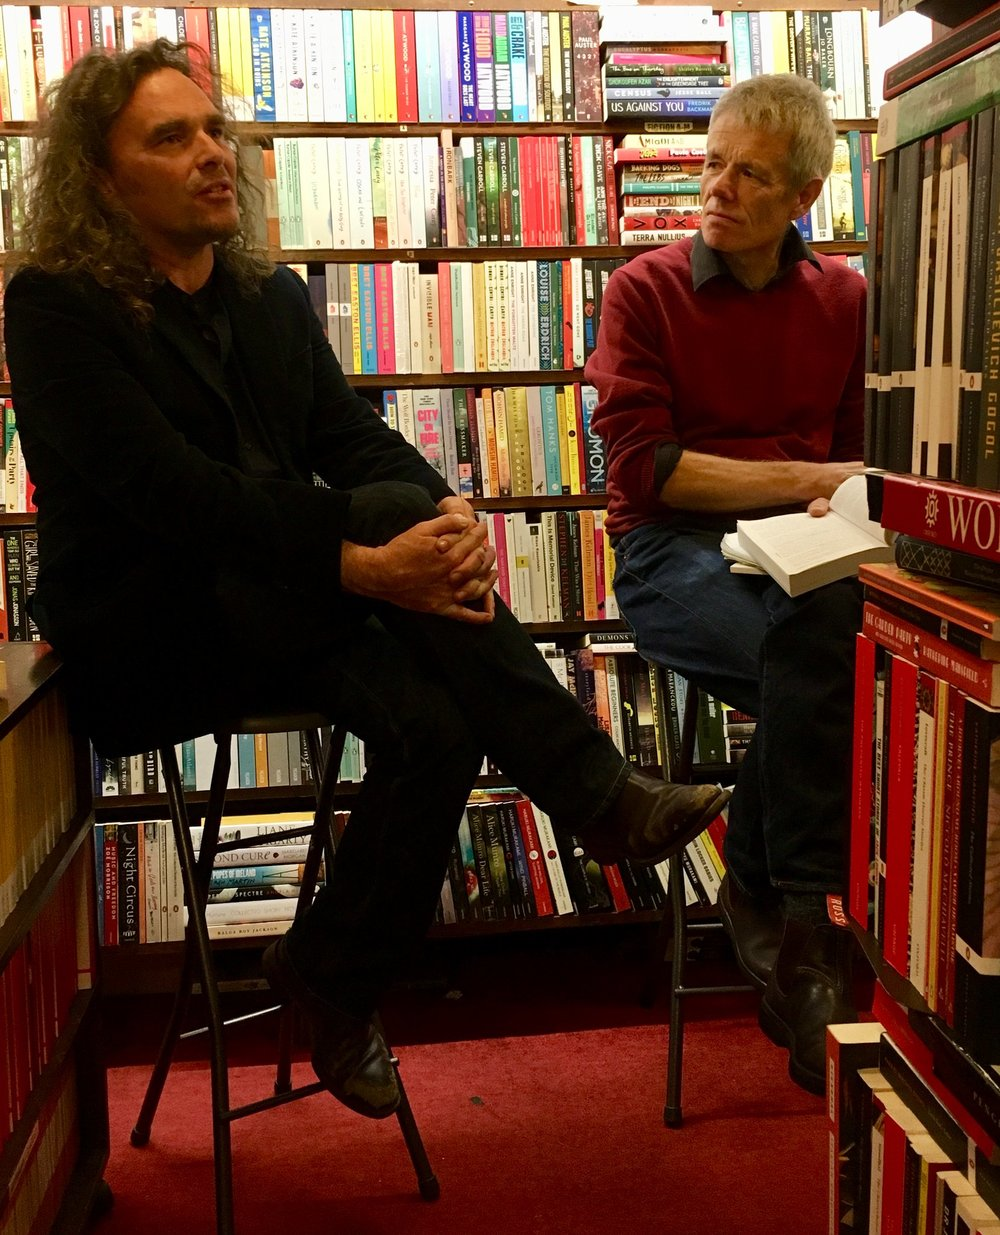 Joel Deane interviewed at the  Paperback Bookshop  by Bill Morton. October 10, 2018.